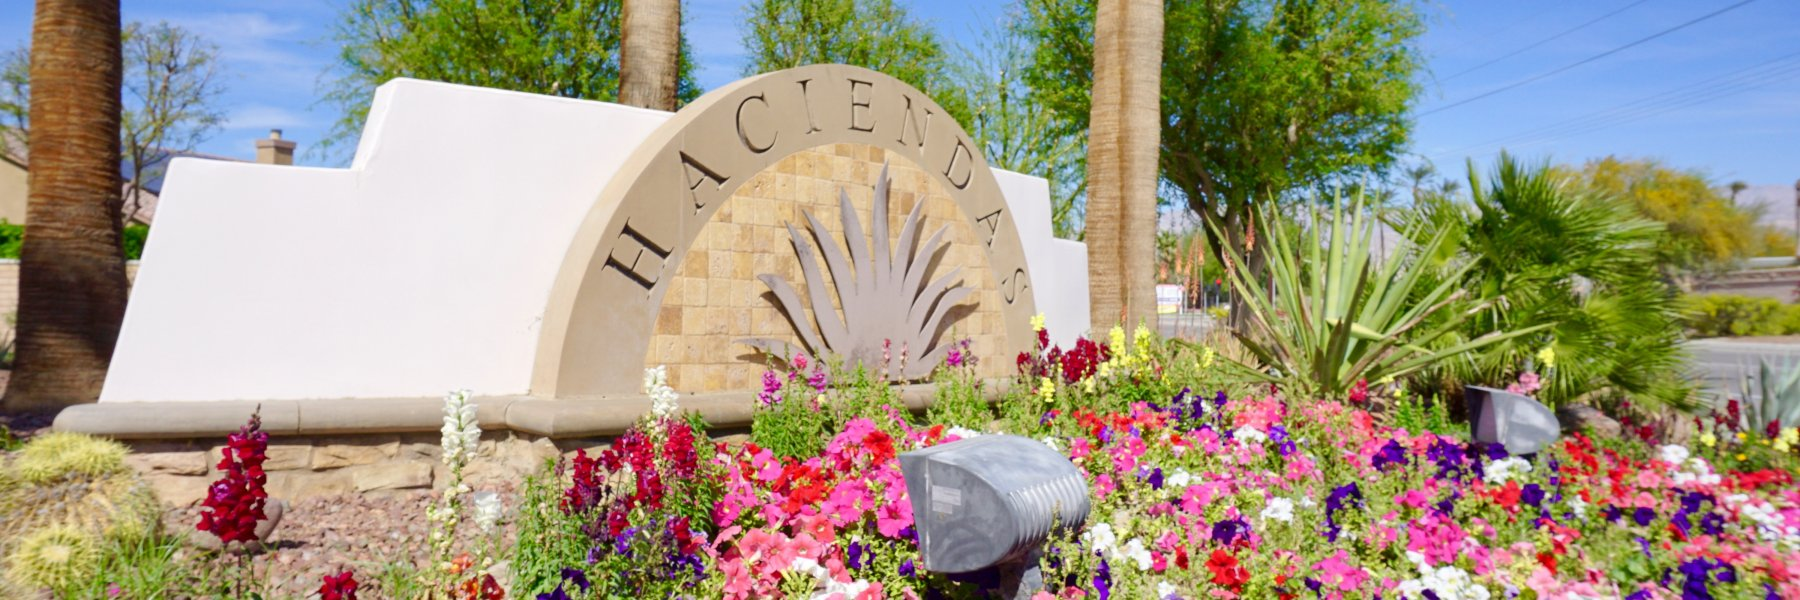 Haciendas is a community of homes in Indio California